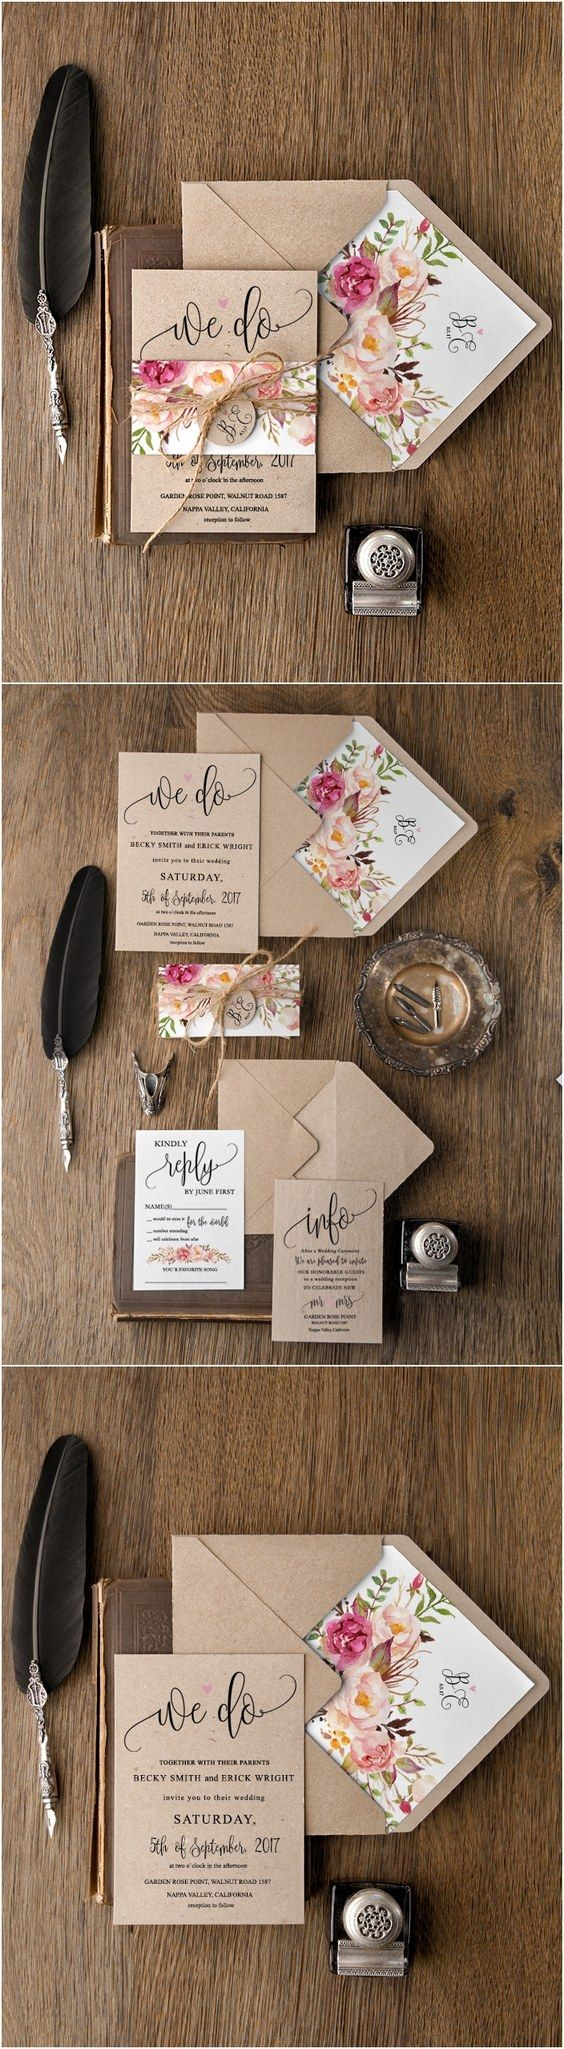 Rustic Wedding Invitations Cheap 30 Our Absolutely Favorite Rustic Wedding Invitations Deer Pearl